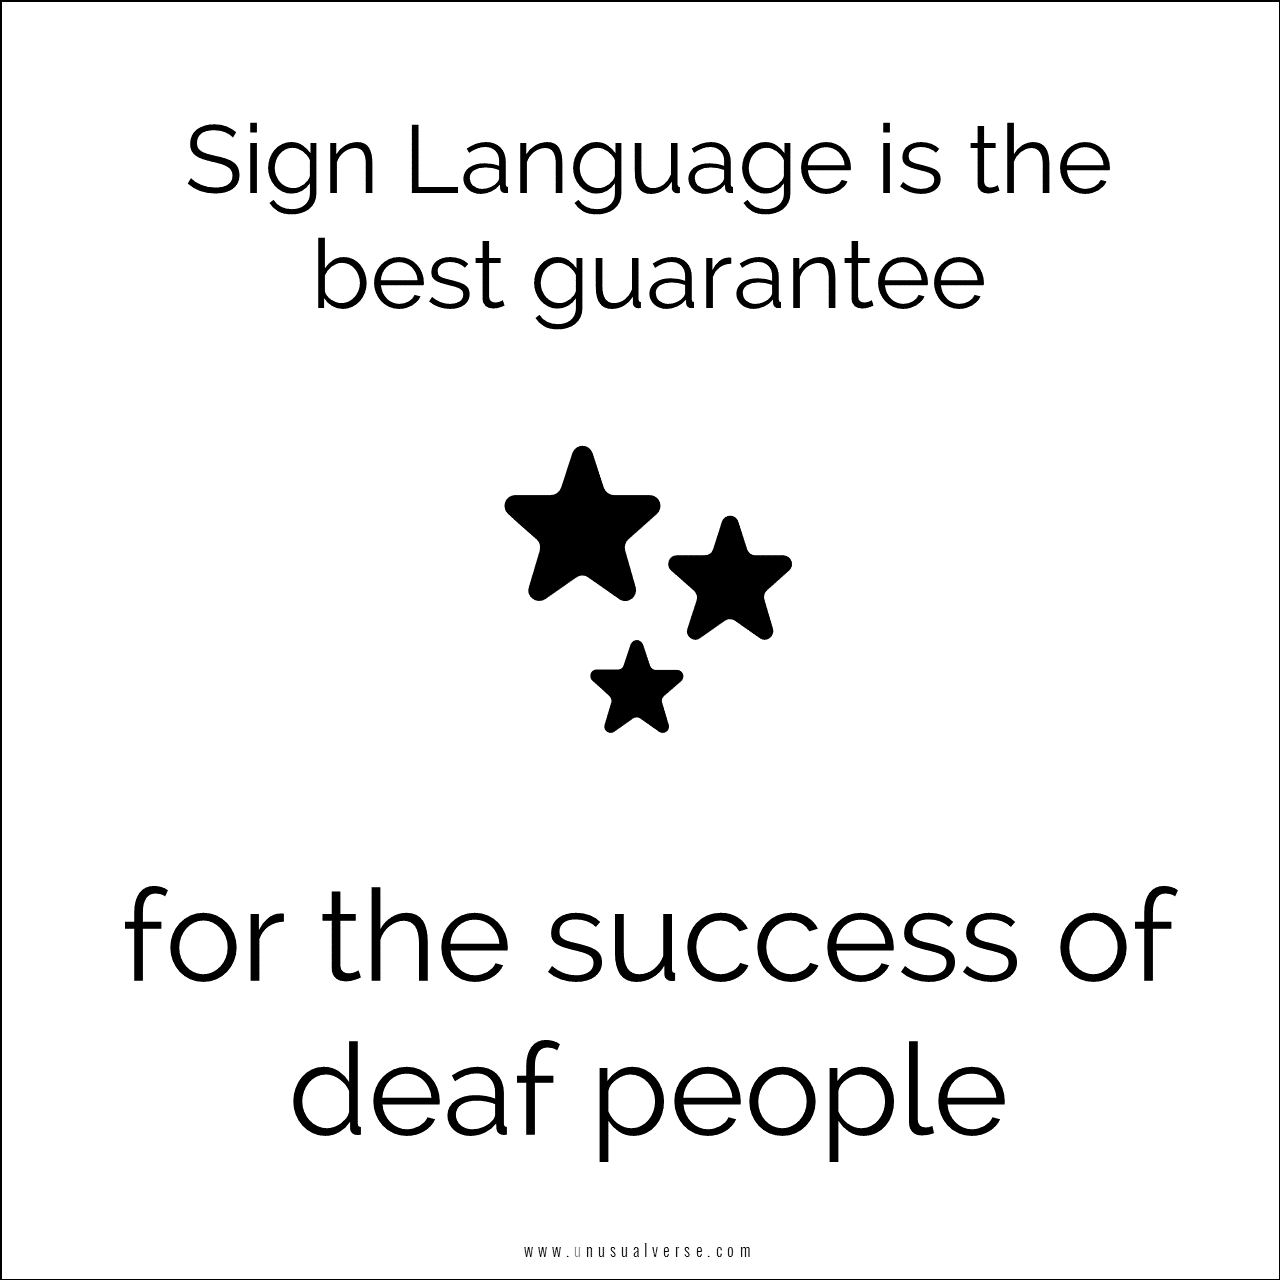 Sign Language is the best guarantee for the success of deaf people